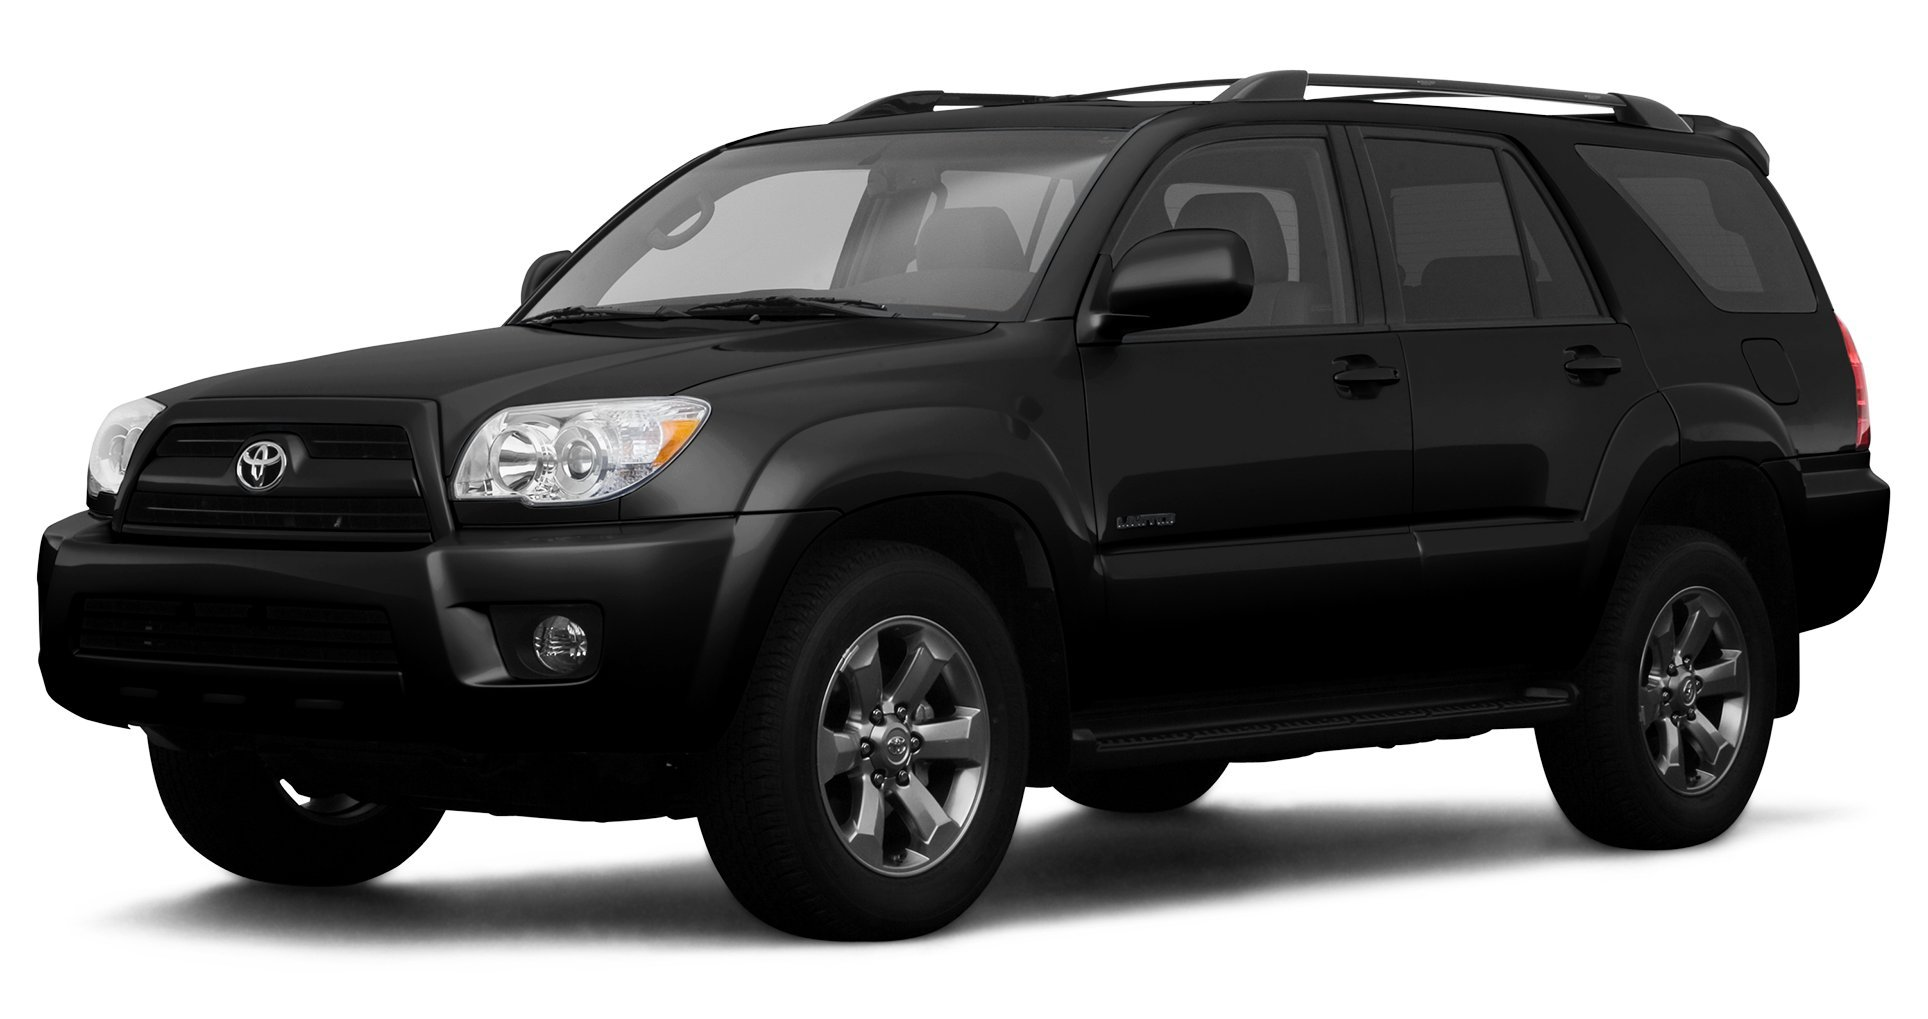 Jeep Cherokee Seating Capacity >> Amazon.com: 2008 Toyota 4Runner Reviews, Images, and Specs: Vehicles